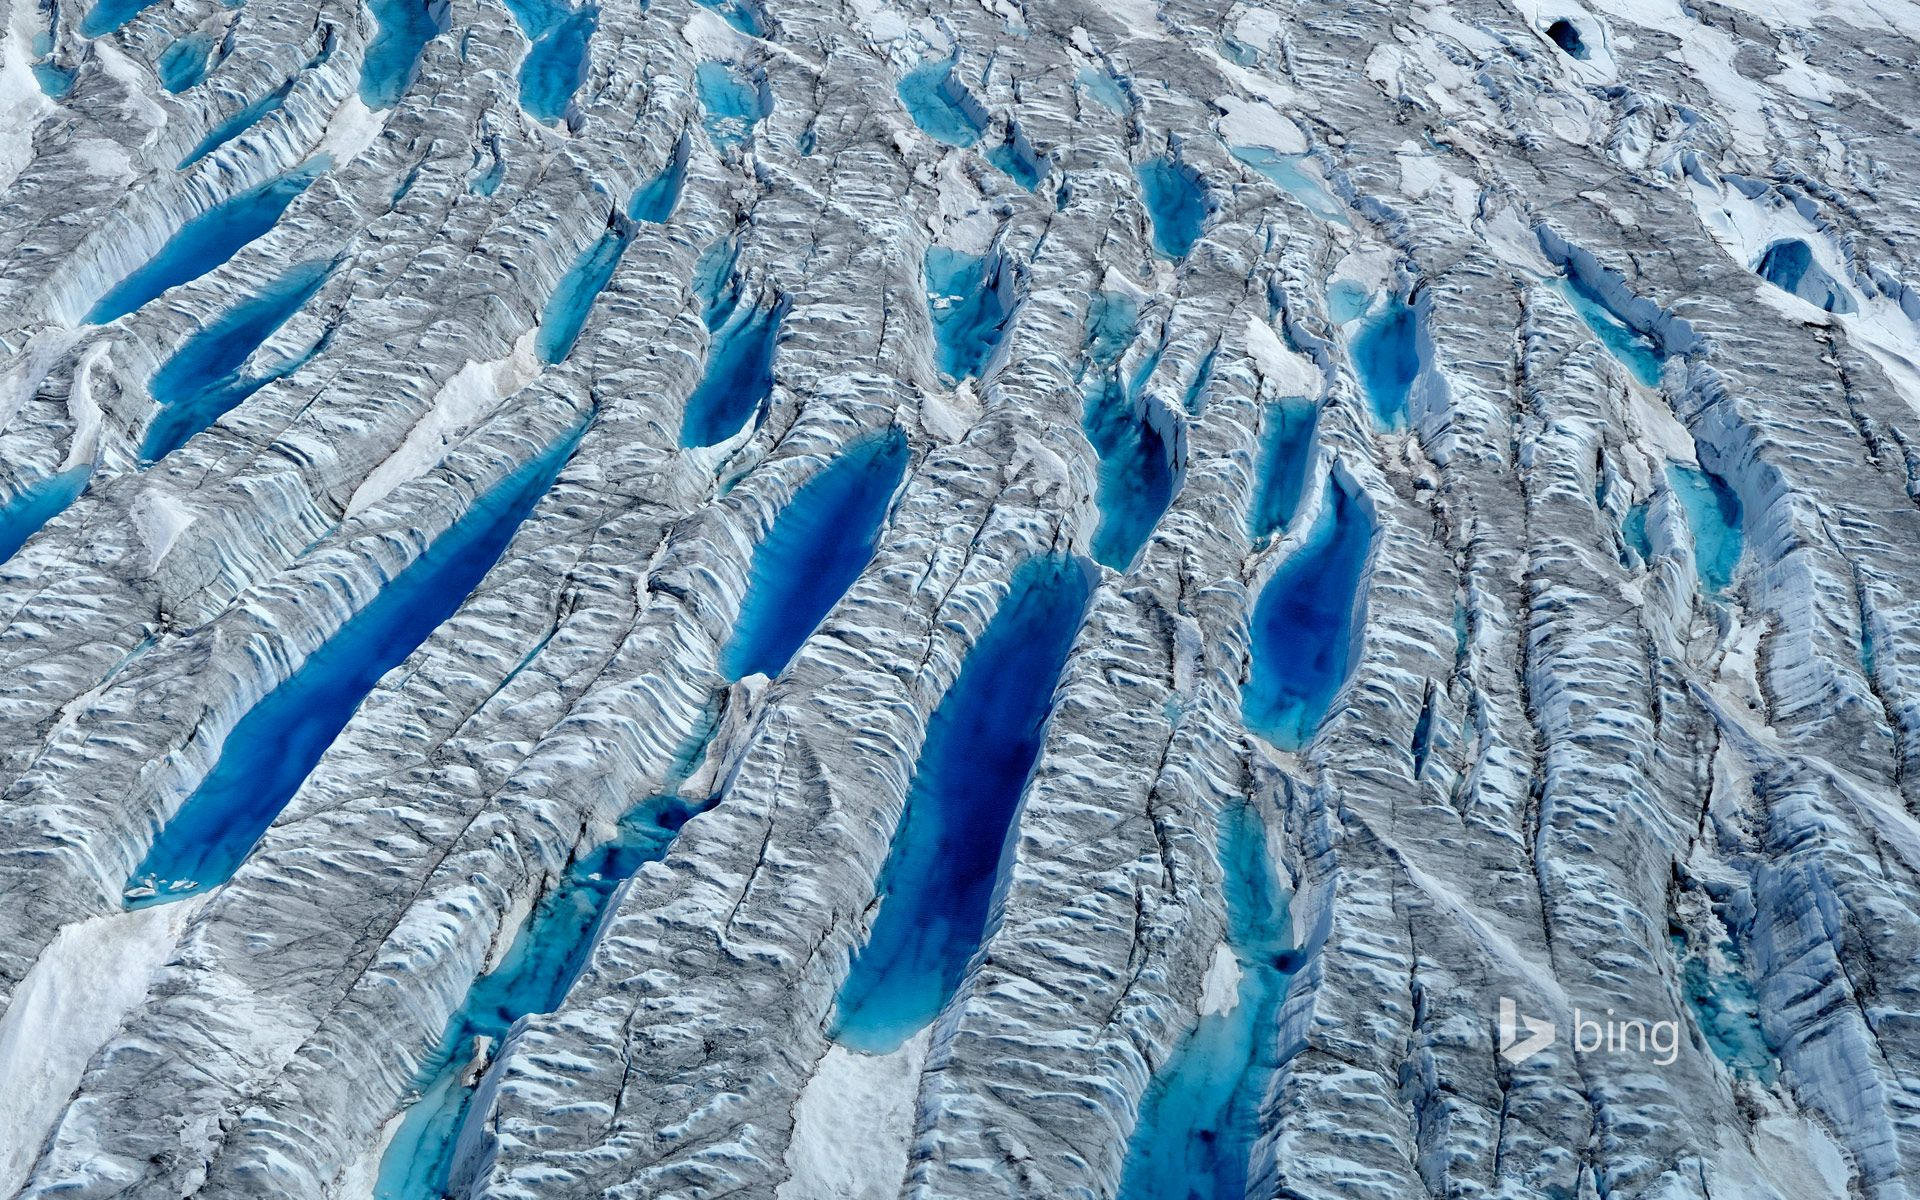 Greenland, North America, | Discovered from Dream Afar New Tab